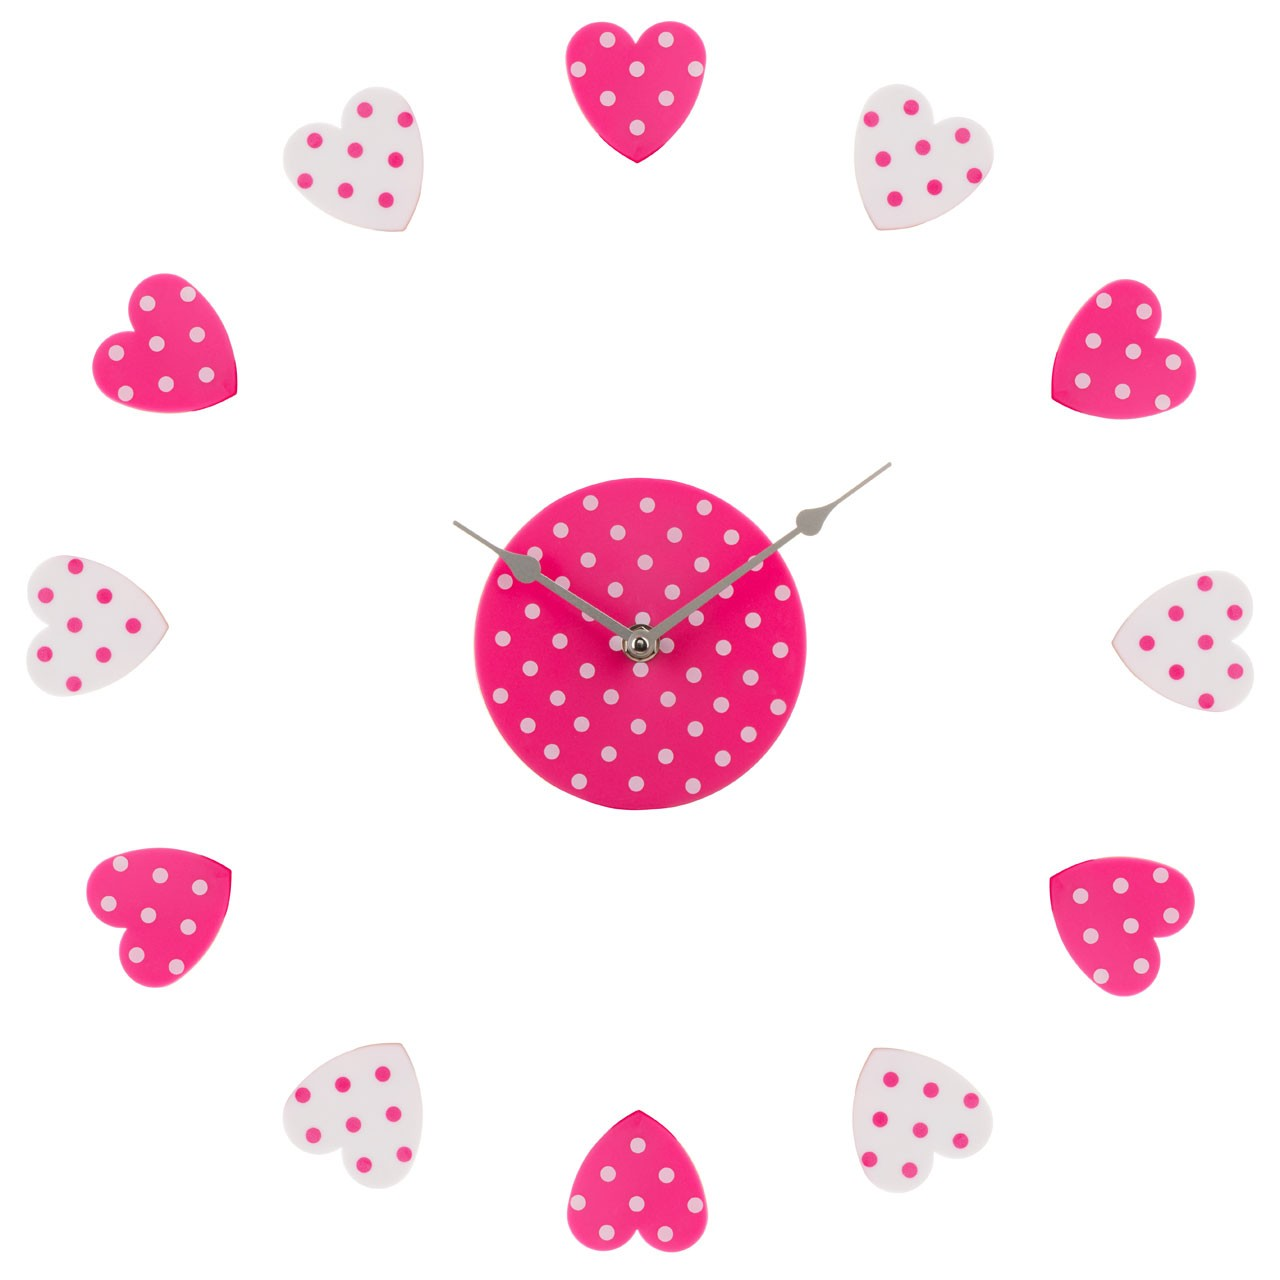 DIY Heart Wall Clock - Pink/White